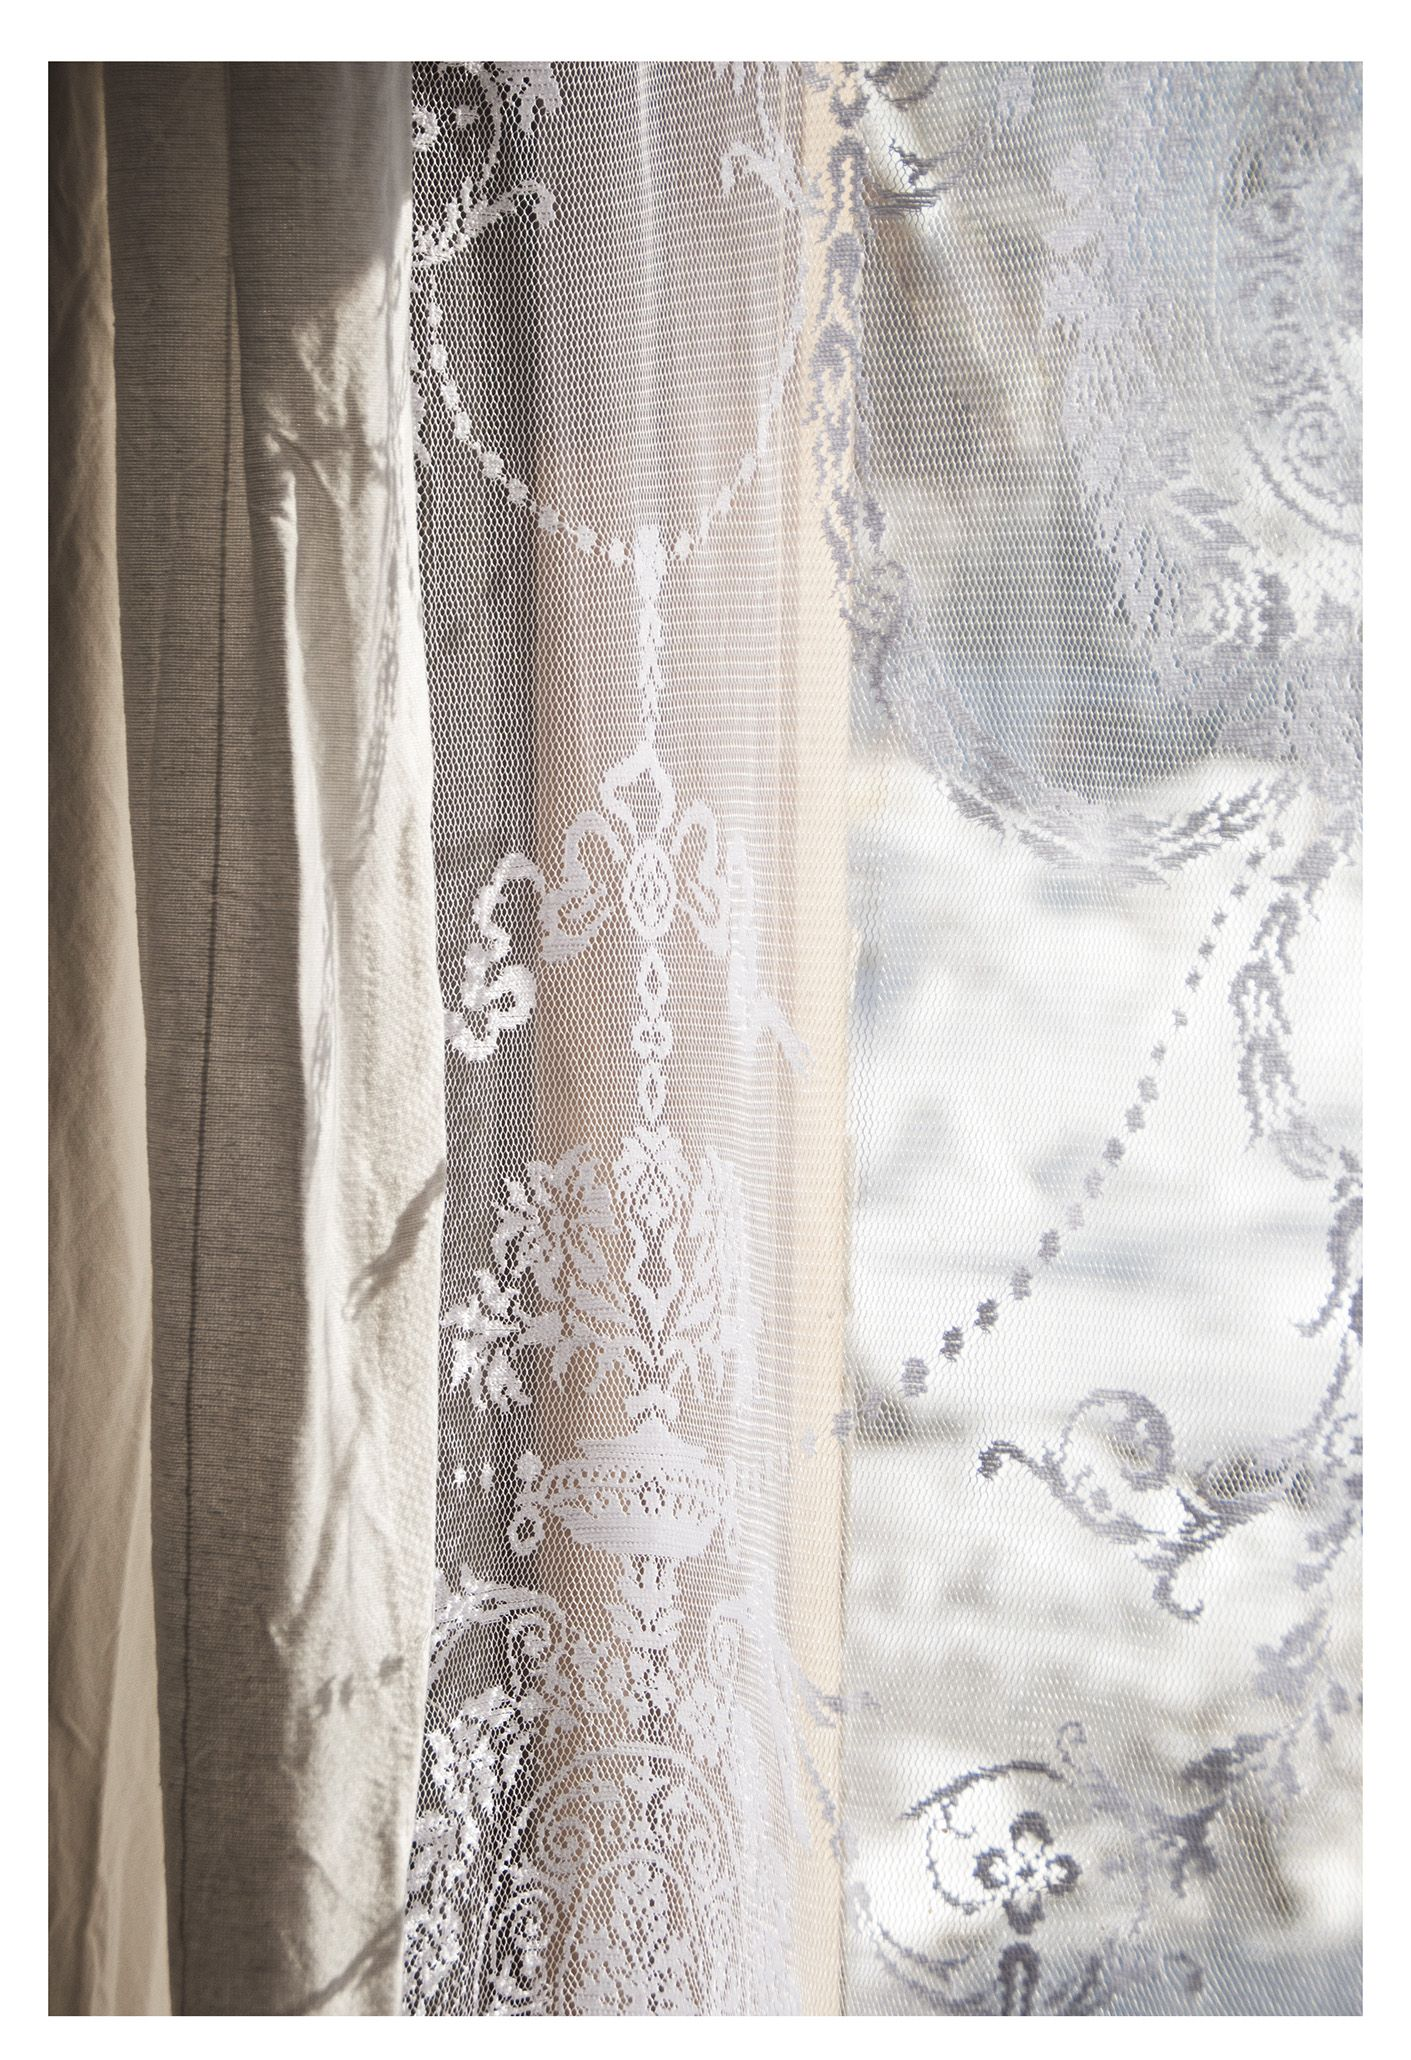 French Lace Curtains Lace Curtain Lace Curtain Home Decor Design Simple Bedroom